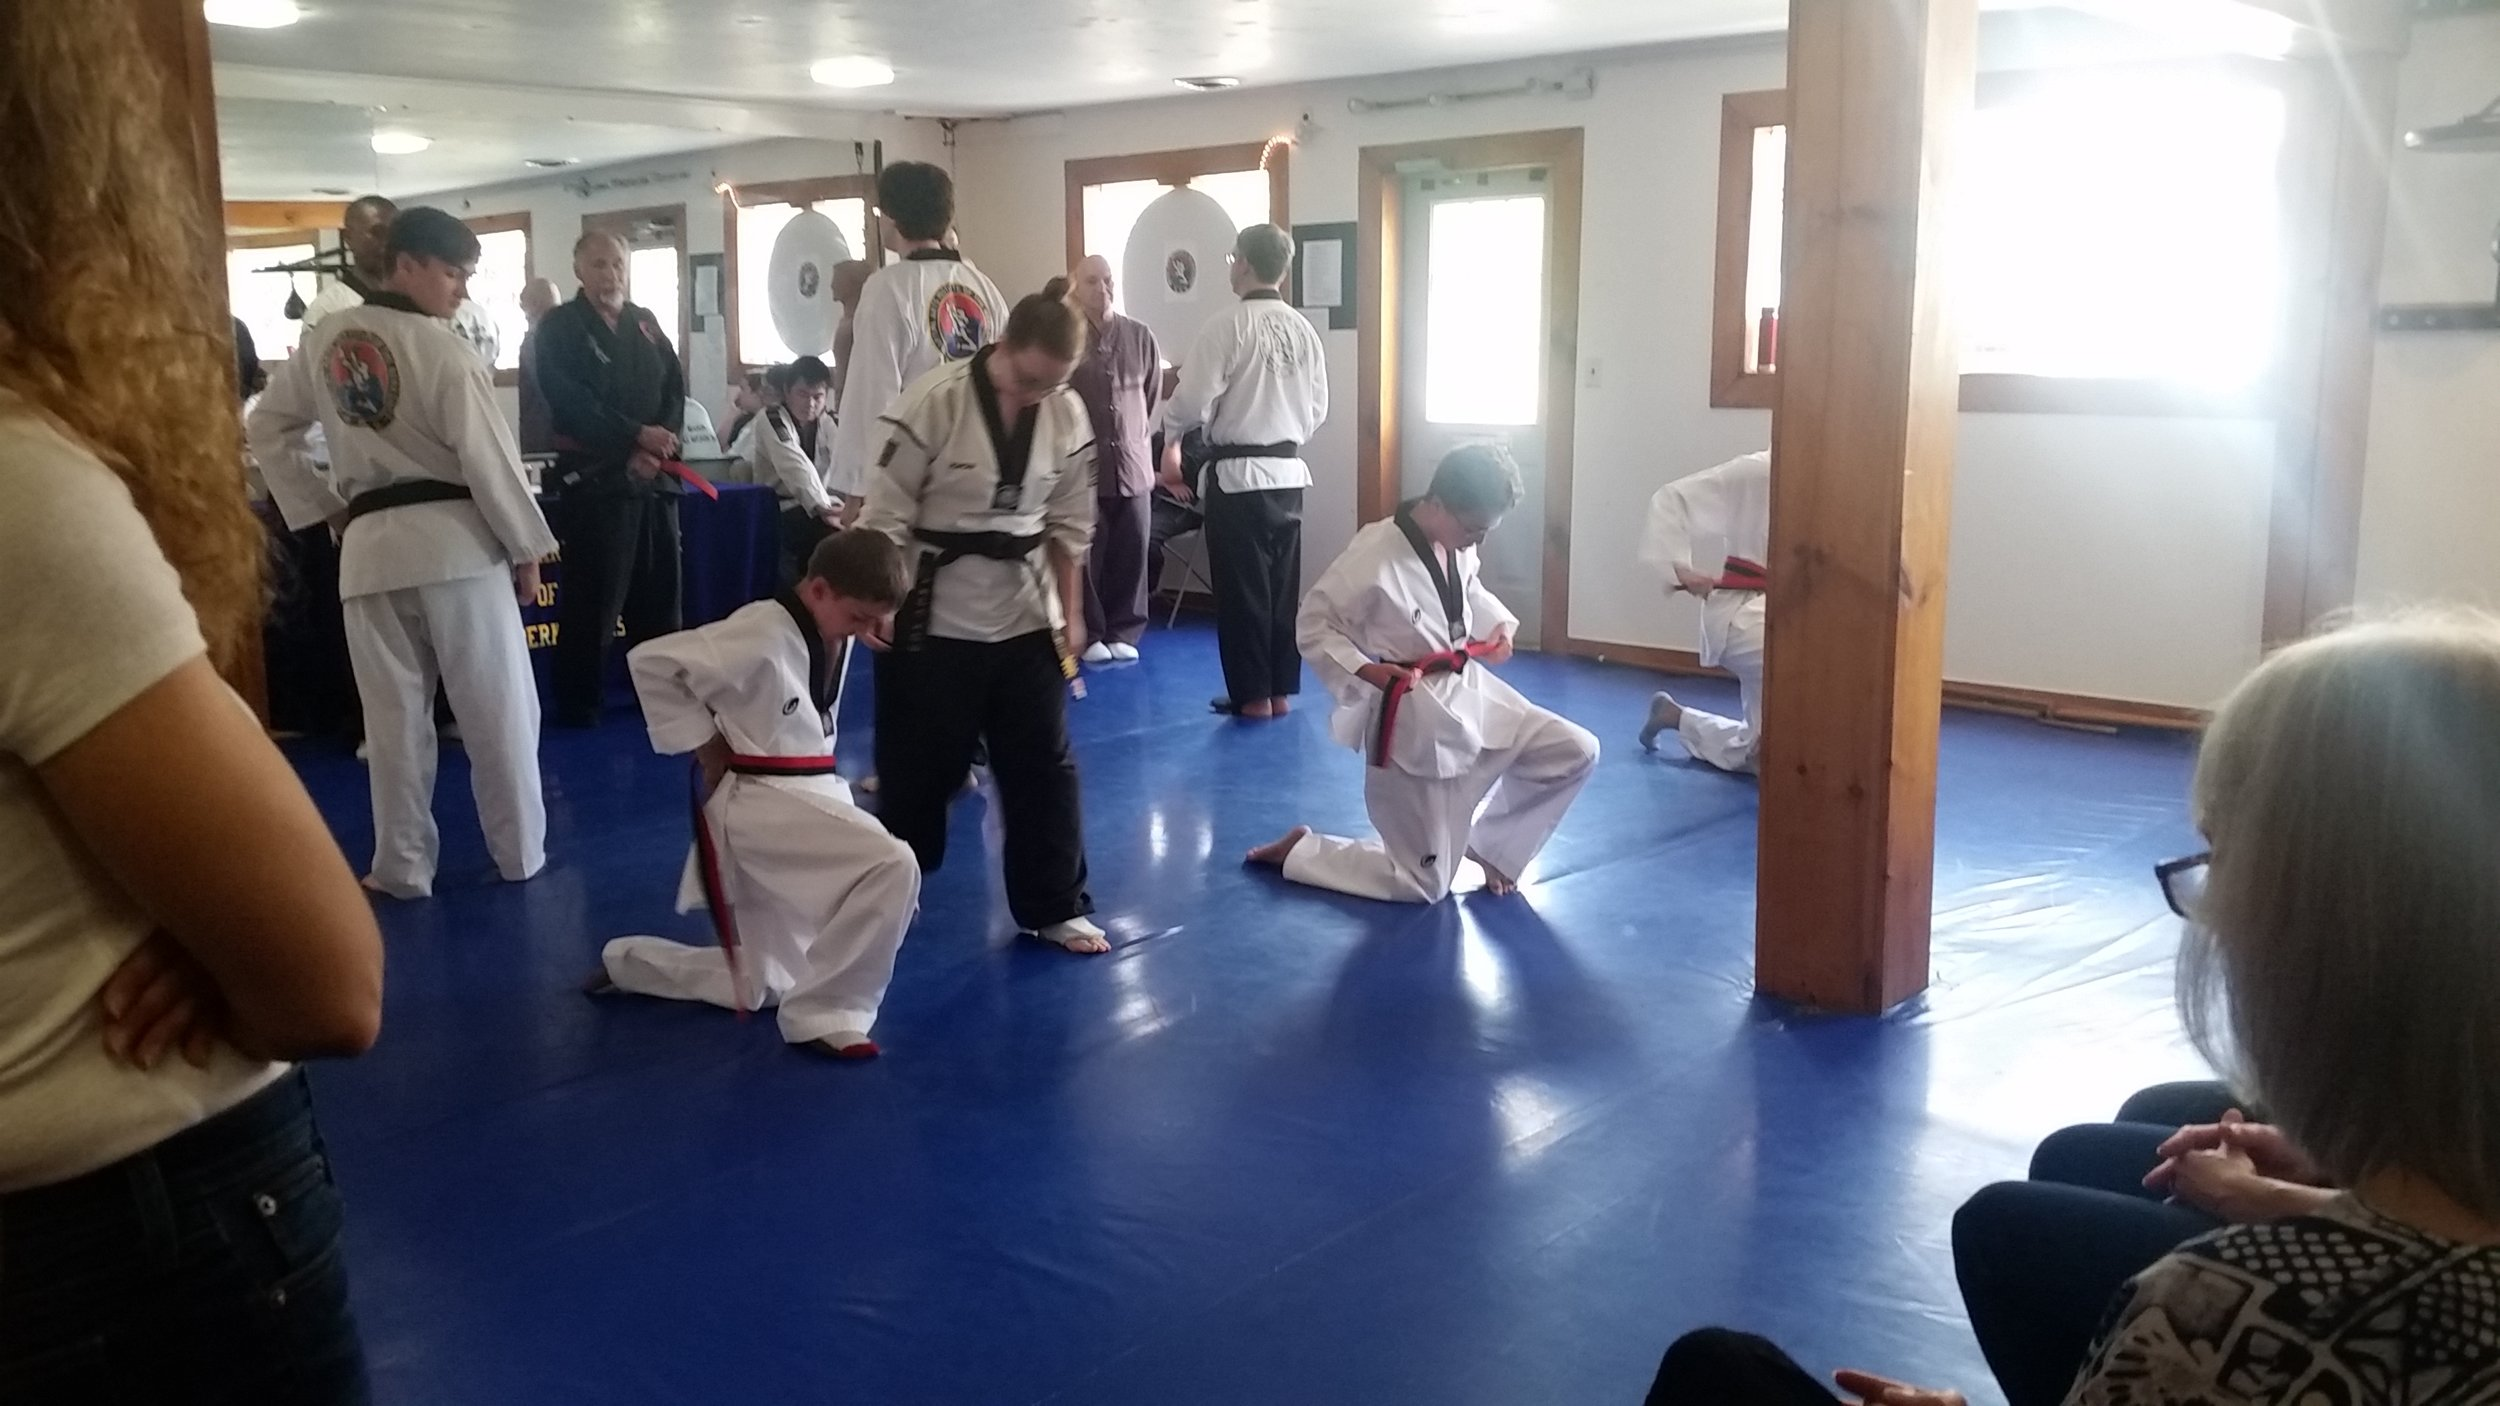 First Dan Candidates kneel to tie their belts at the beginning of the test.